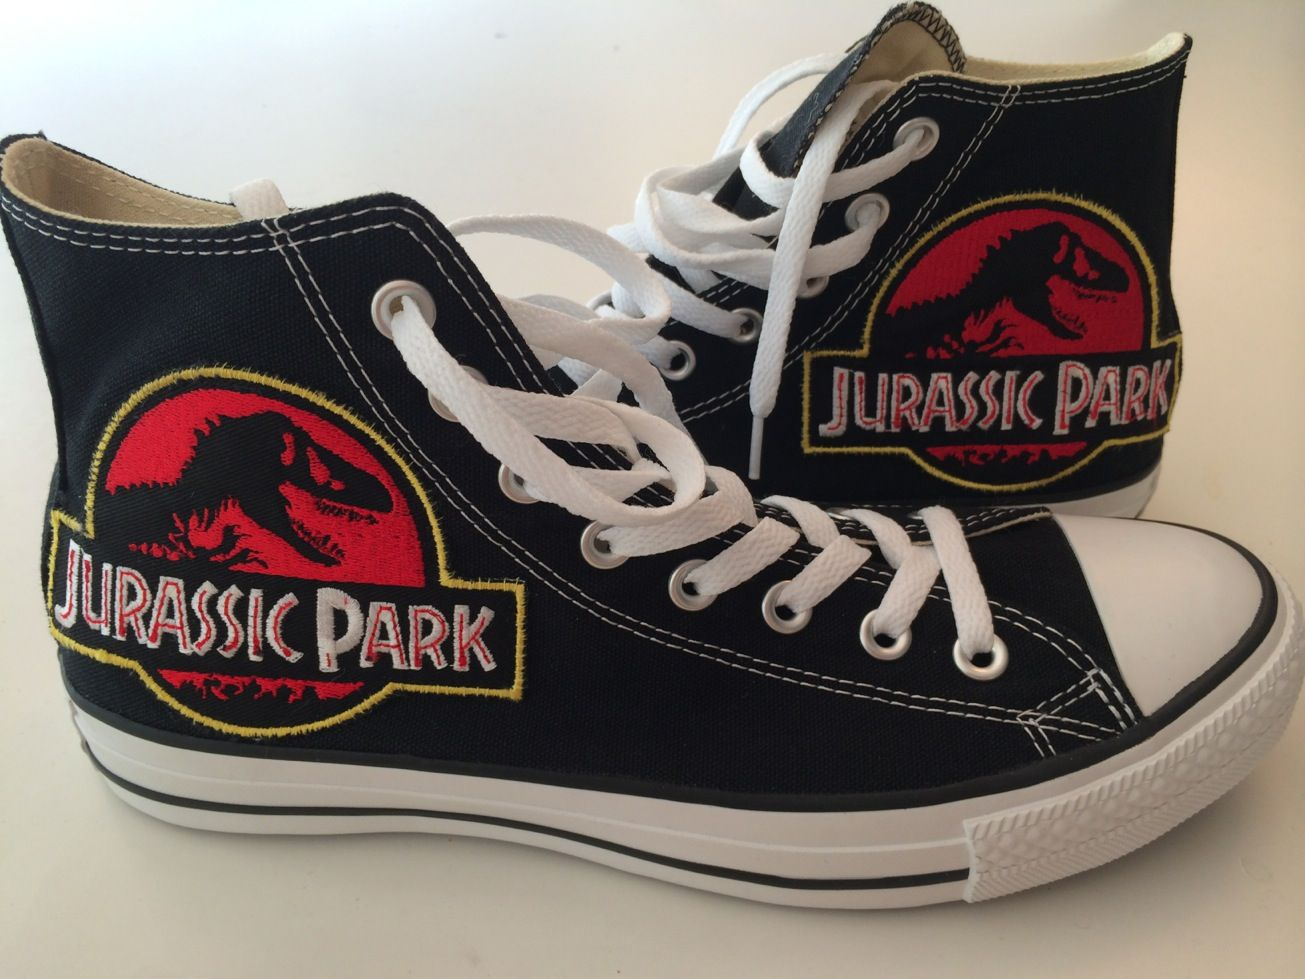 Small DIY project to make a pair of Jurassic Park shoes. in 2019 ... 2d44f88bb2fd